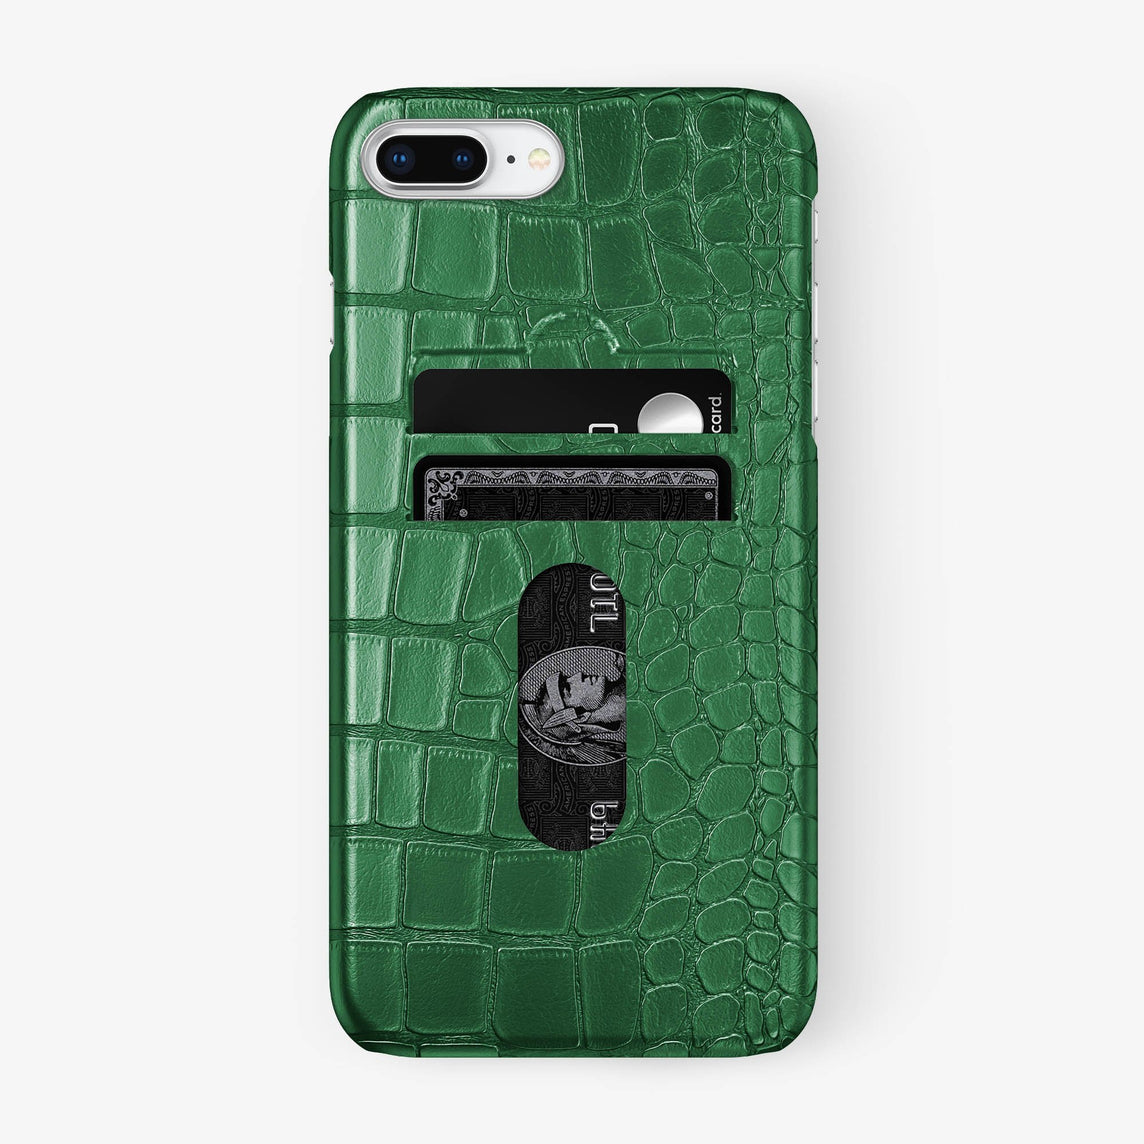 Alligator Card Holder Case iPhone 7/8 Plus | Green - Stainless Steel